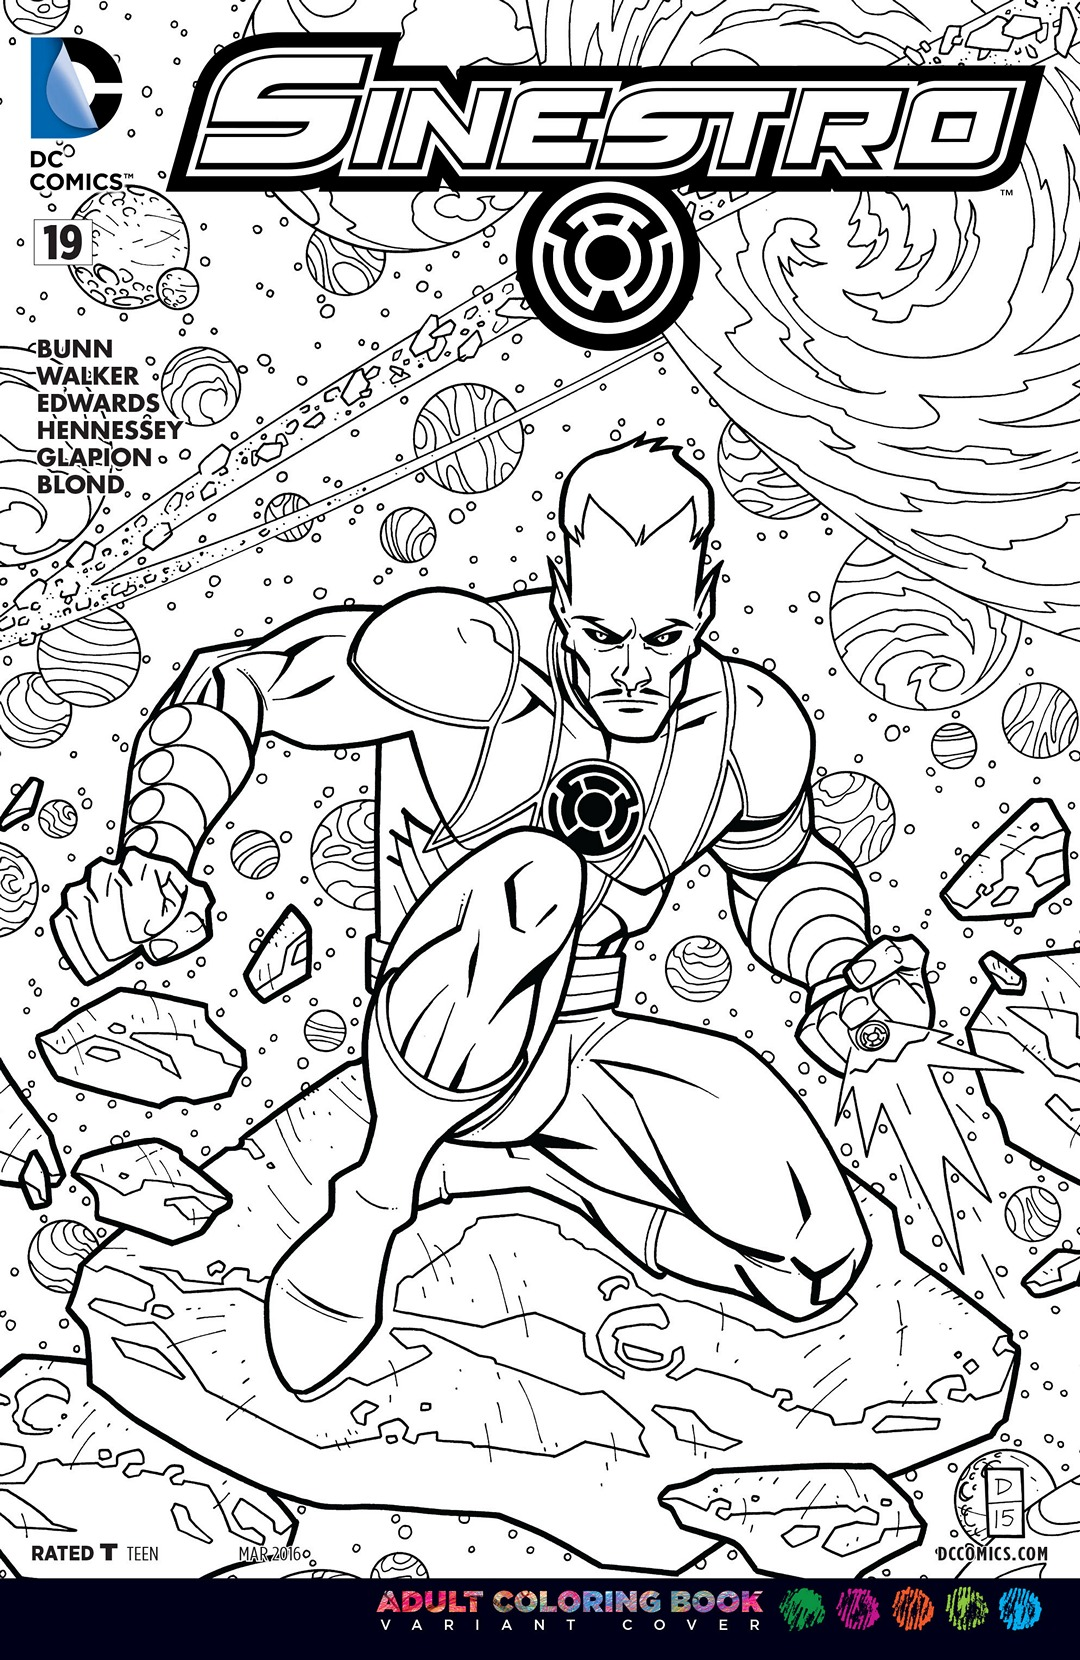 sinestro vol 1 19 adult coloring book variantjpg